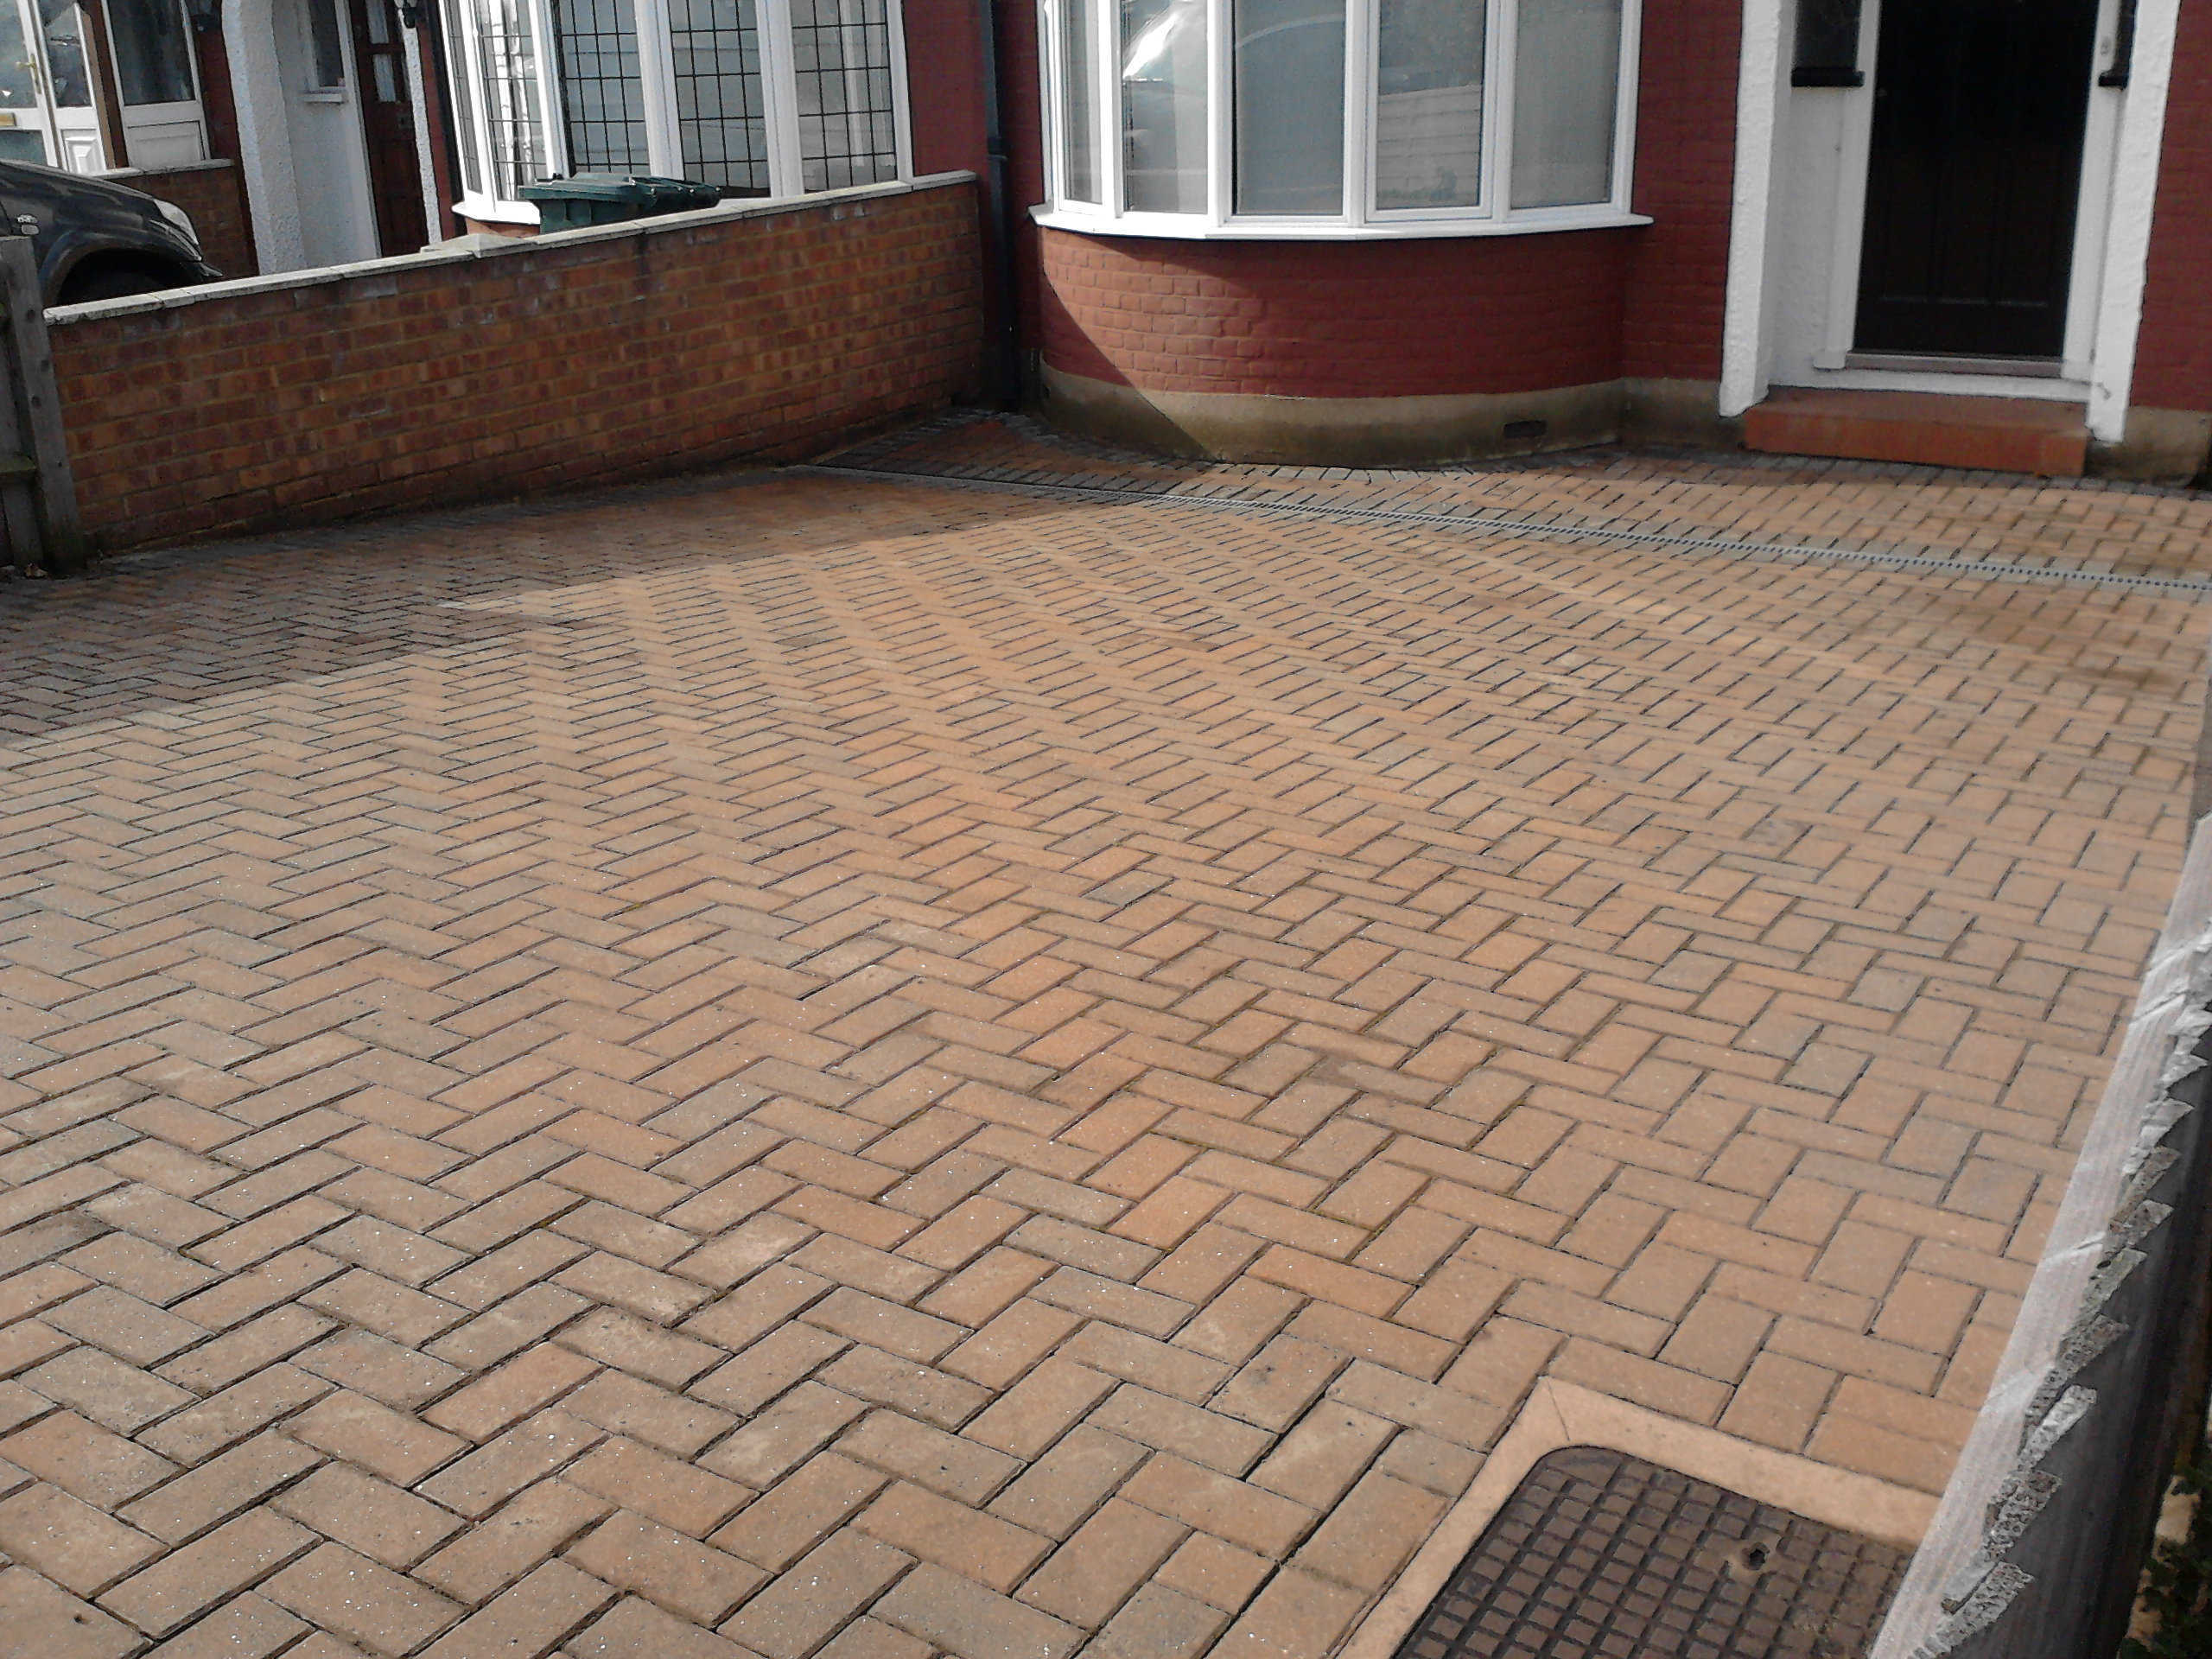 Block Paving N12: AFTER